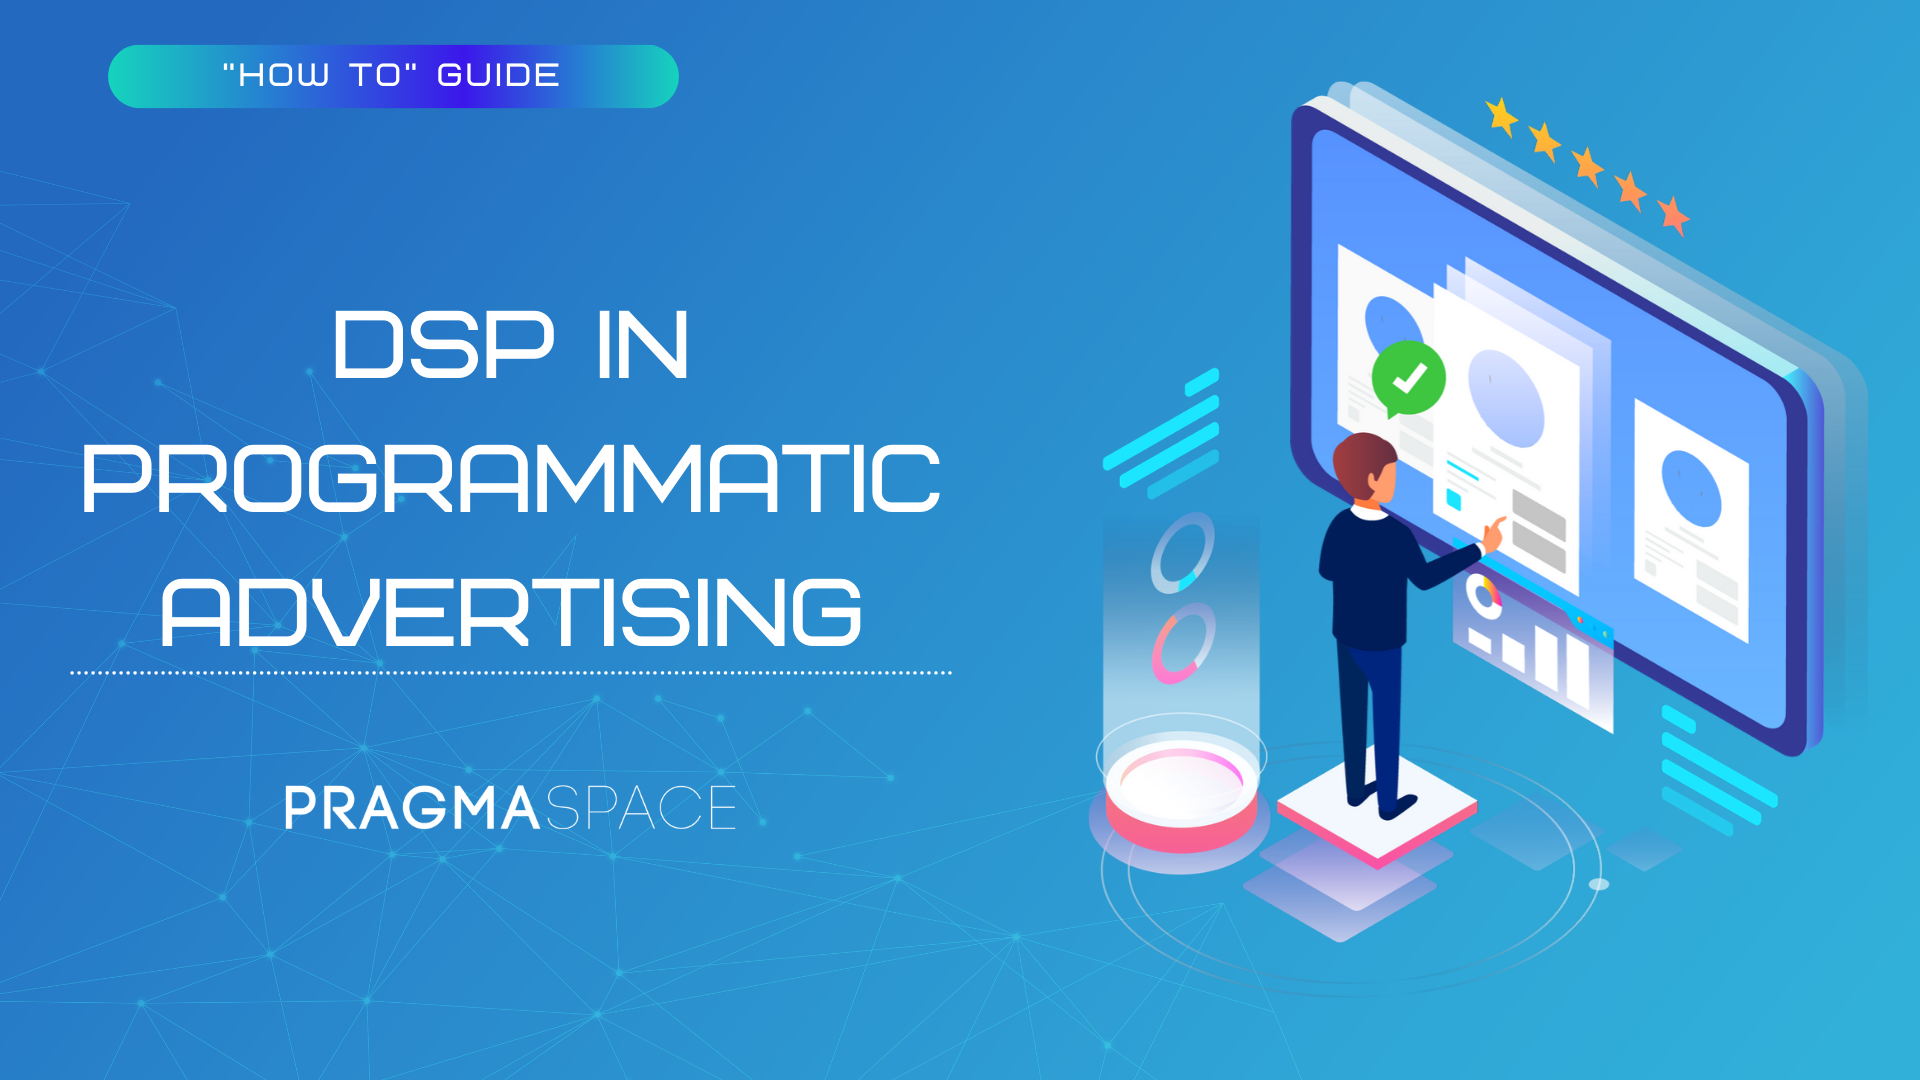 DSP in Programmatic Advertising: how to make a choice?